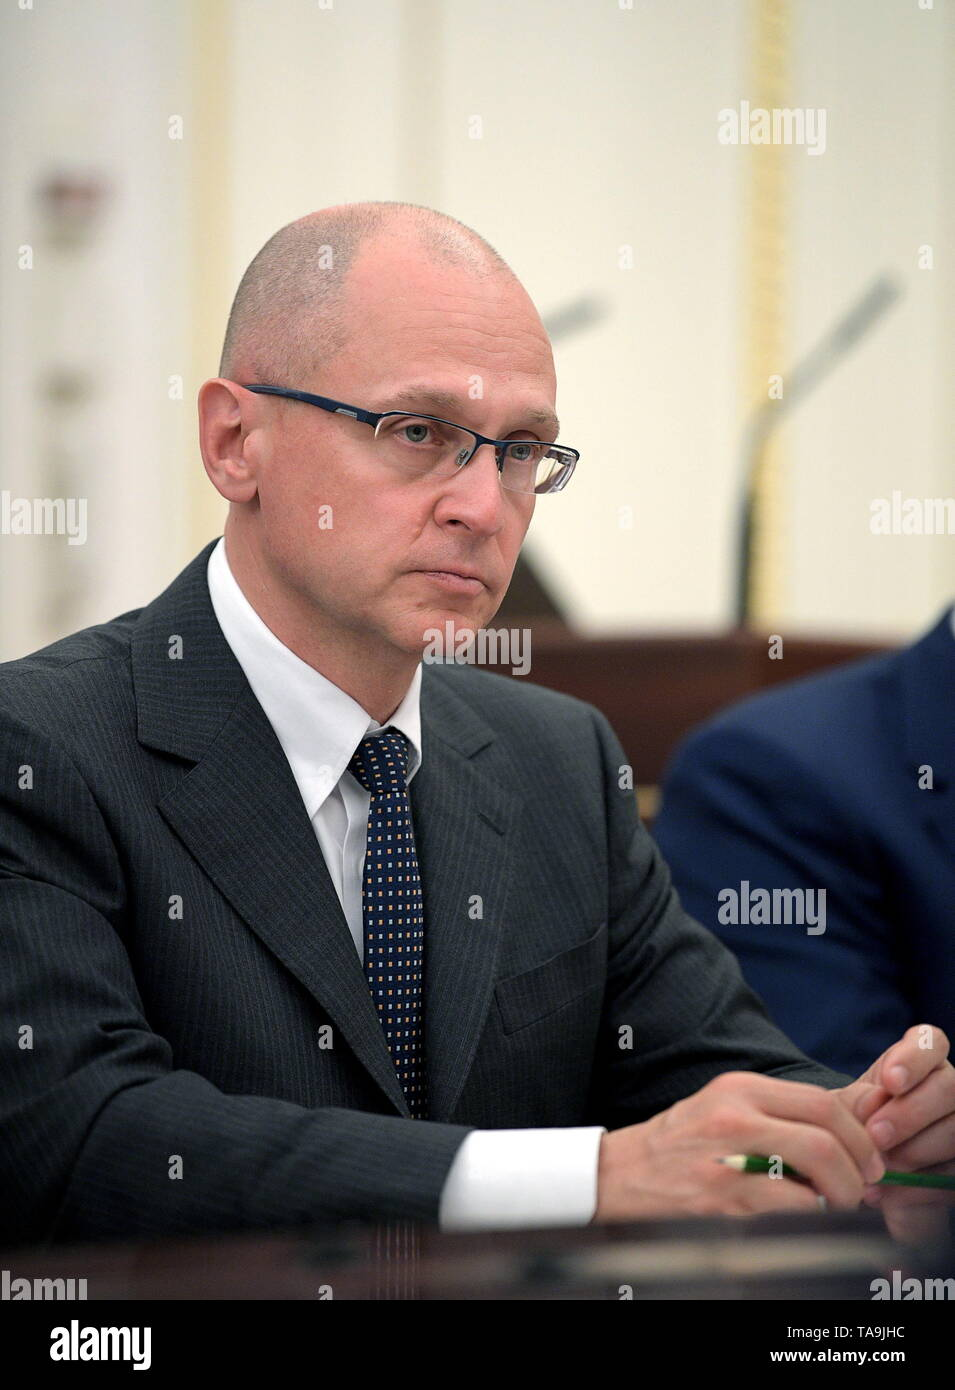 Moscow, Russia. 22nd May, 2019. MOSCOW, RUSSIA - MAY 22, 2019: Kremlin's First Deputy Chief of Staff Sergei Kiriyenko during a meeting between Russian President Vladimir Putin and members of the Russian Government at Moscow's Kremlin. Alexei Druzhinin/Russian Presidential Press and Information Office/TASS Credit: ITAR-TASS News Agency/Alamy Live News - Stock Image